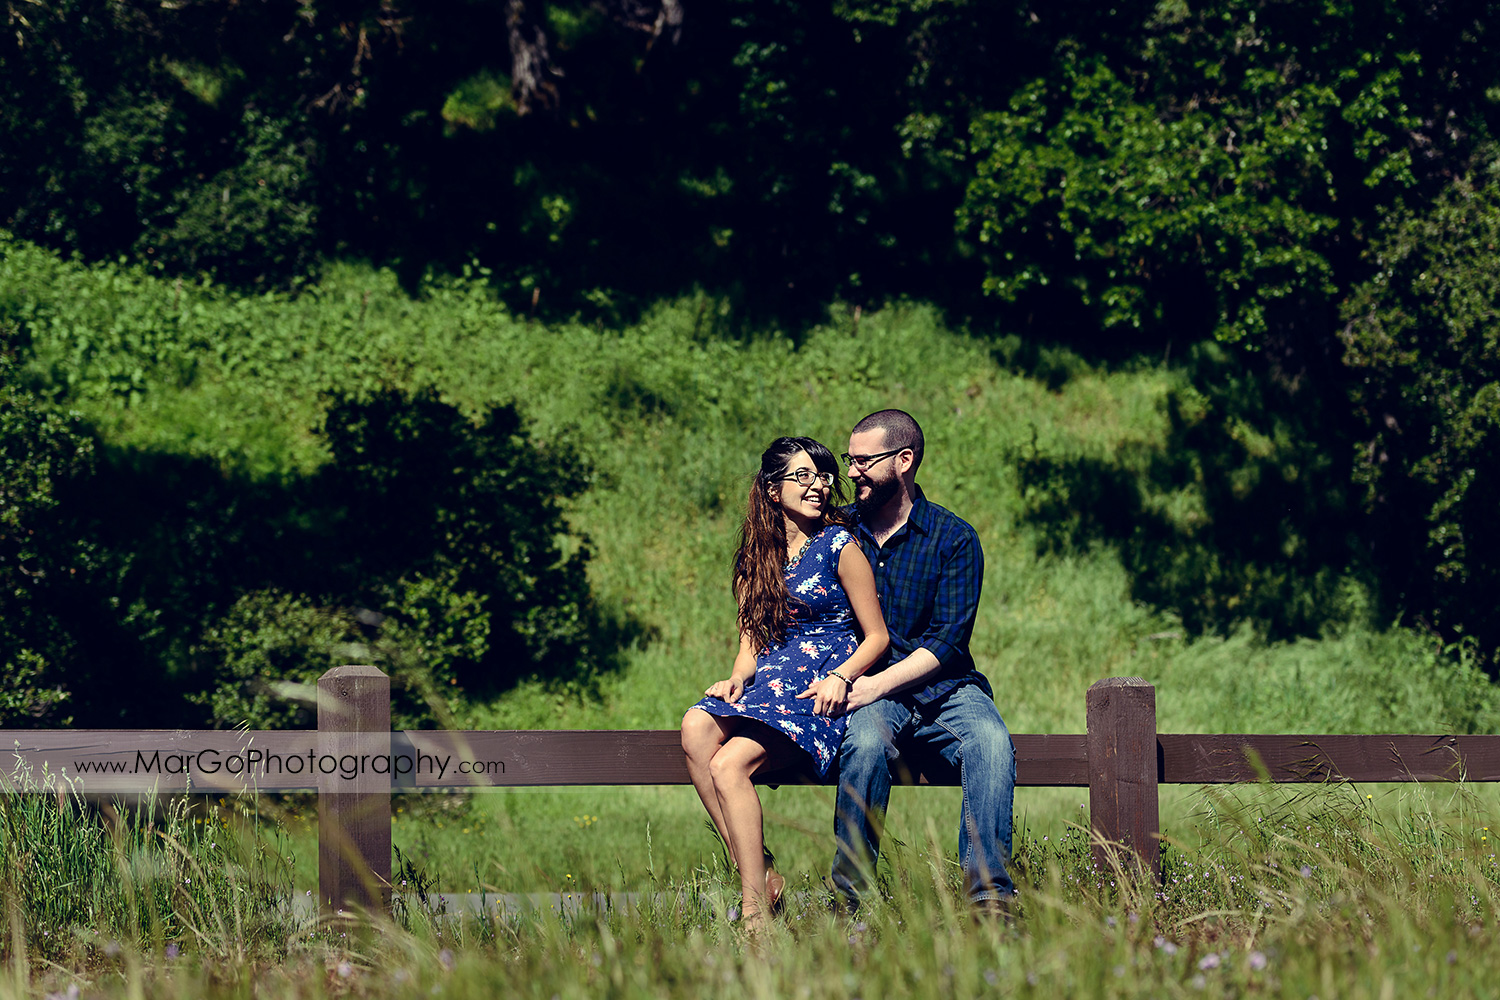 woman in blue dress and man in blue shirt sitting on the wooden fence during engagement session at Sunol Regional Wilderness